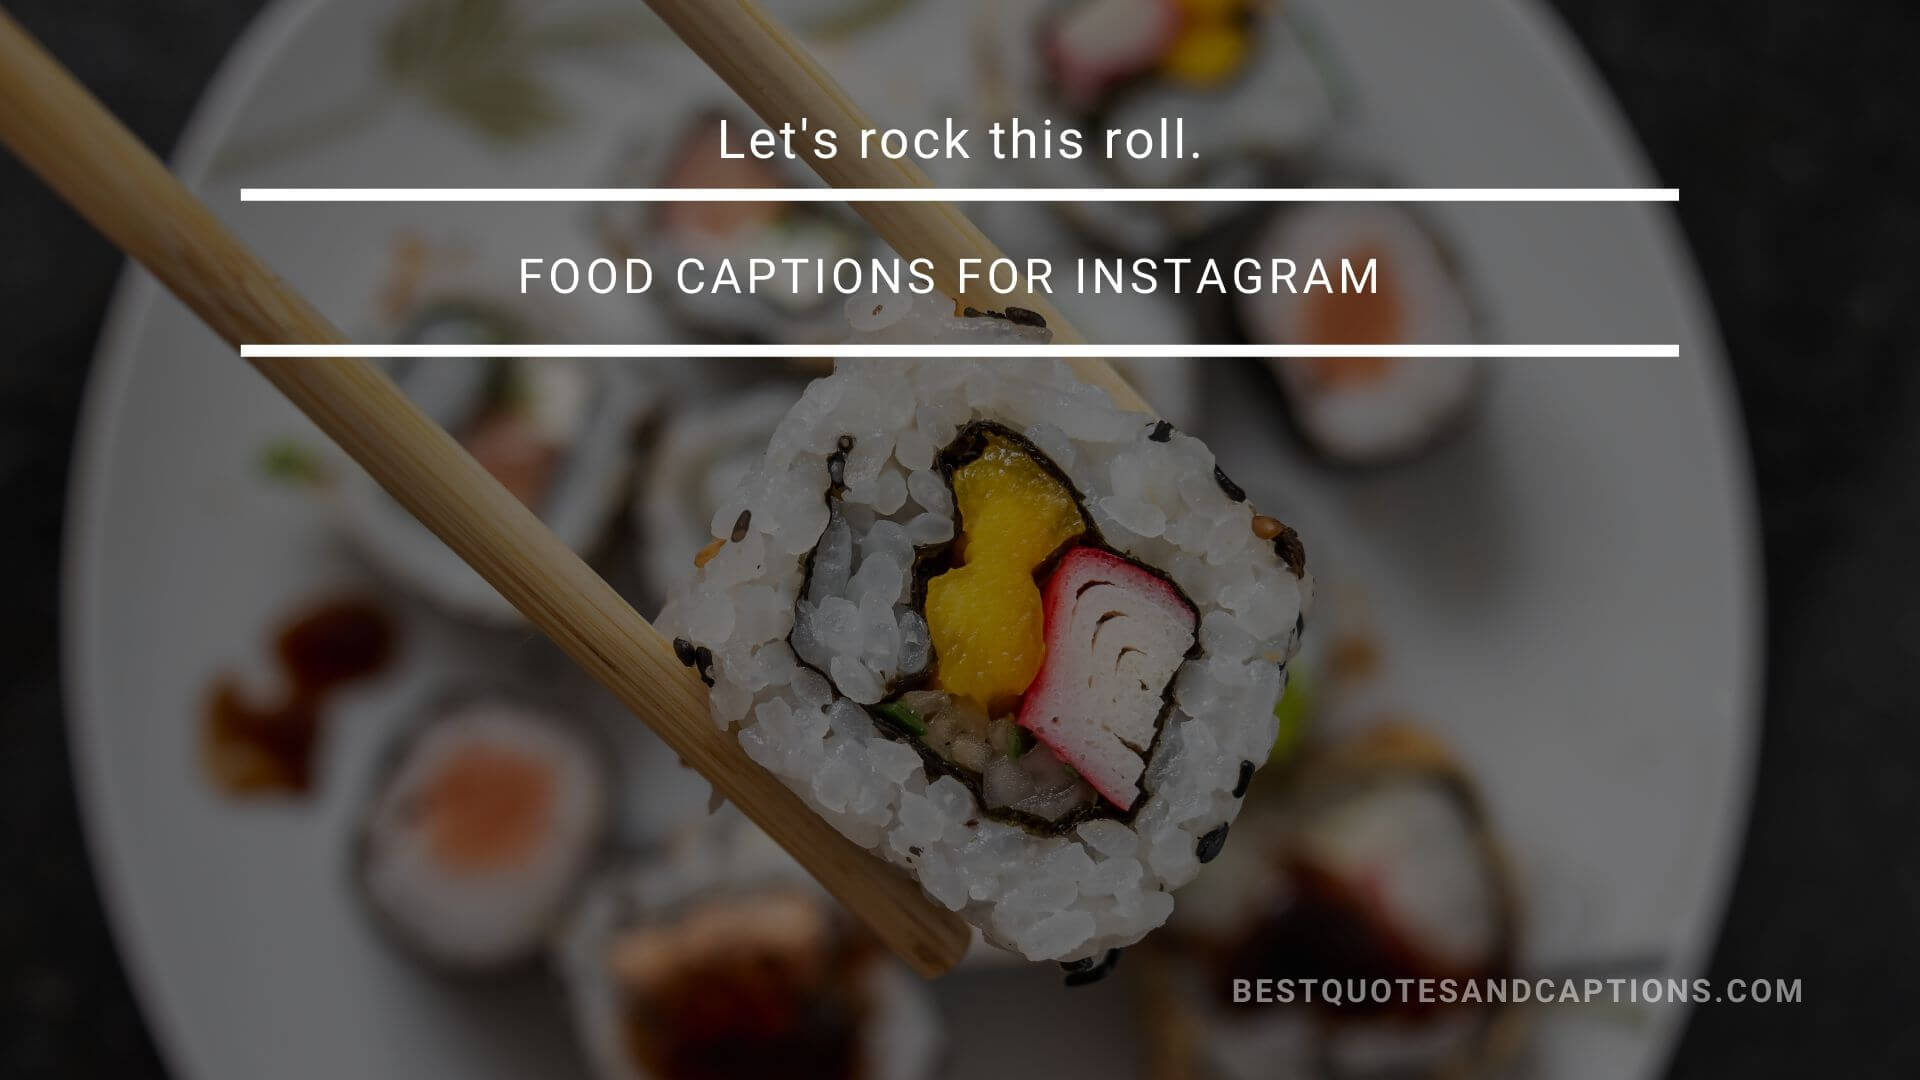 Sushi captions for Instagram